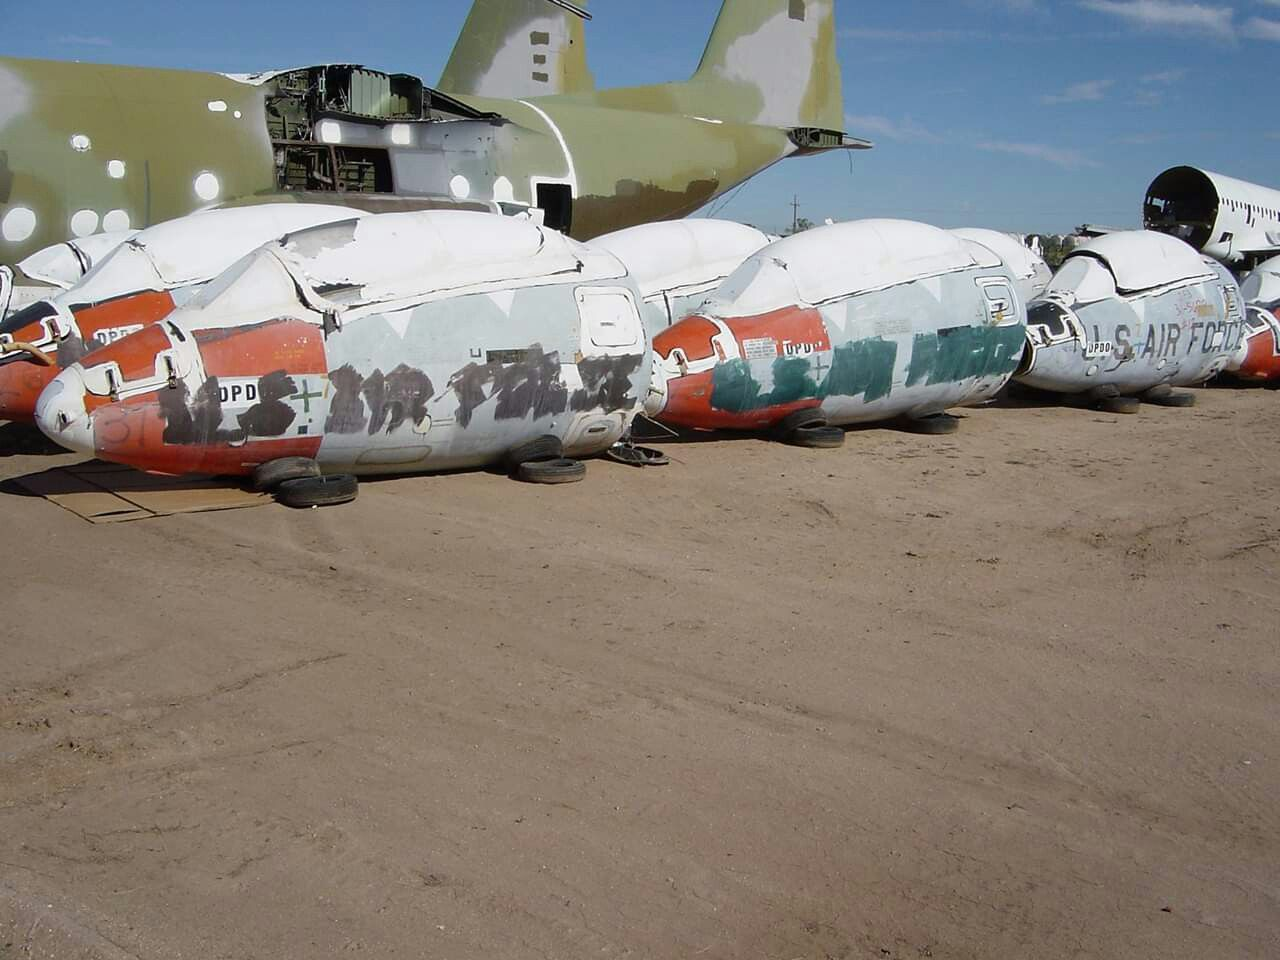 Pin by Rob on boneyard in 2020 Fighter jets, Fighter